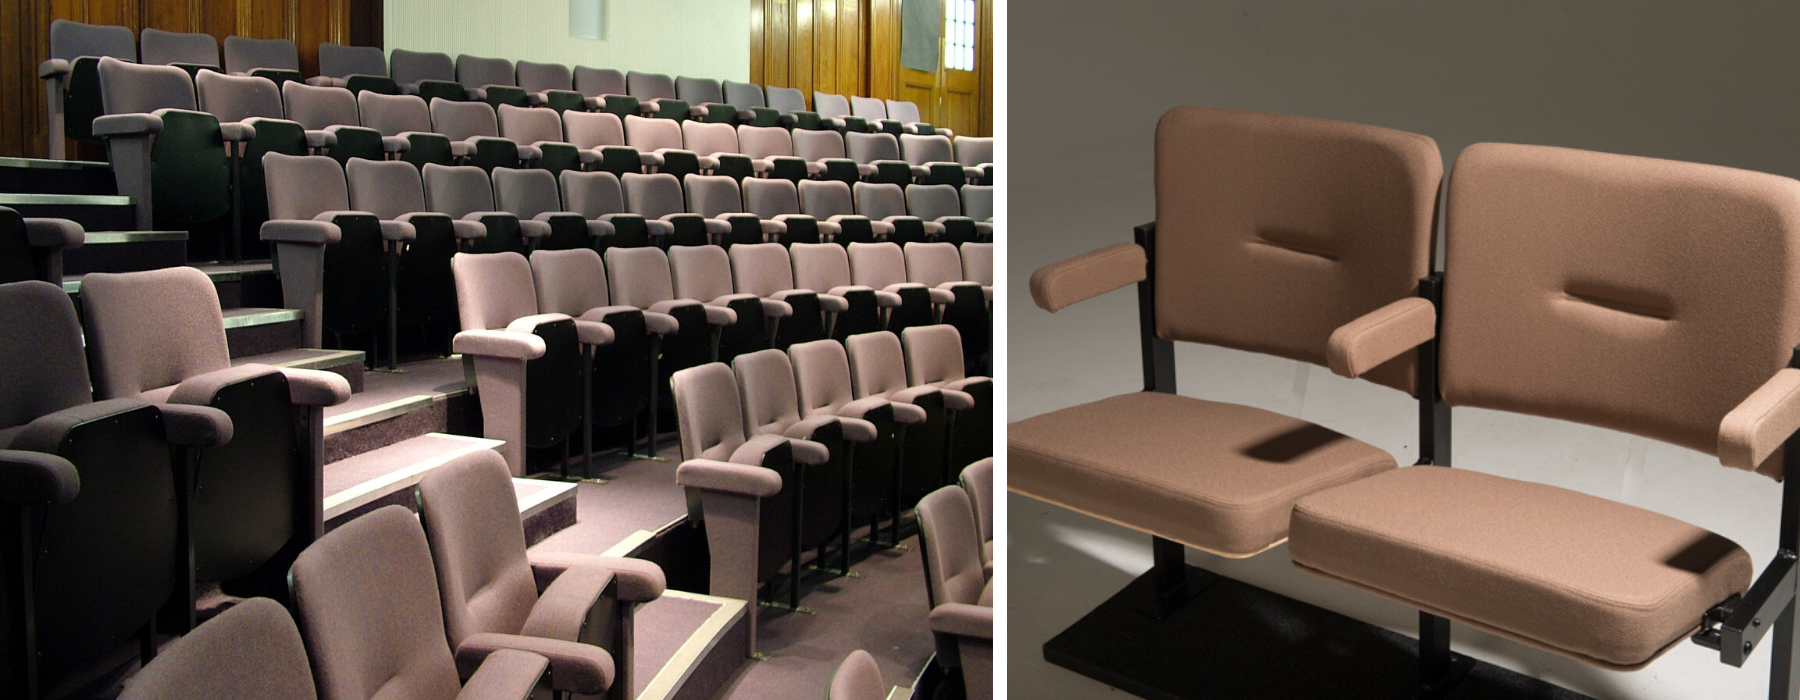 stone fabric colour for fixed seating shown on theatre seats in an auditorium and on a pair of seats